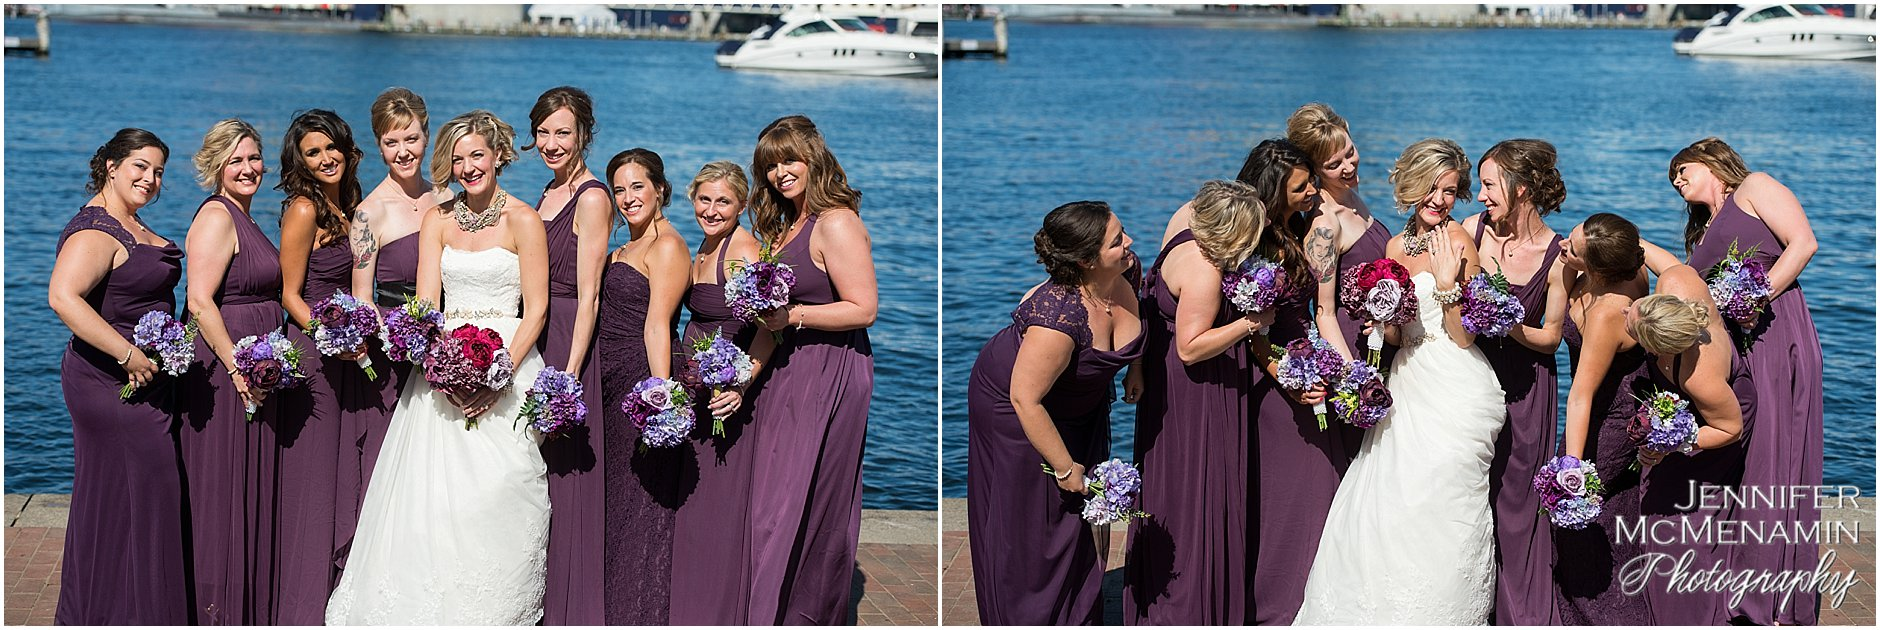 013-MorrisPustilnik_00936-0148_Jennifer-McMenamin-Photography-Royal-Sonesta-Harbor-Court-Hotel-wedding-Baltimore-wedding-photographer